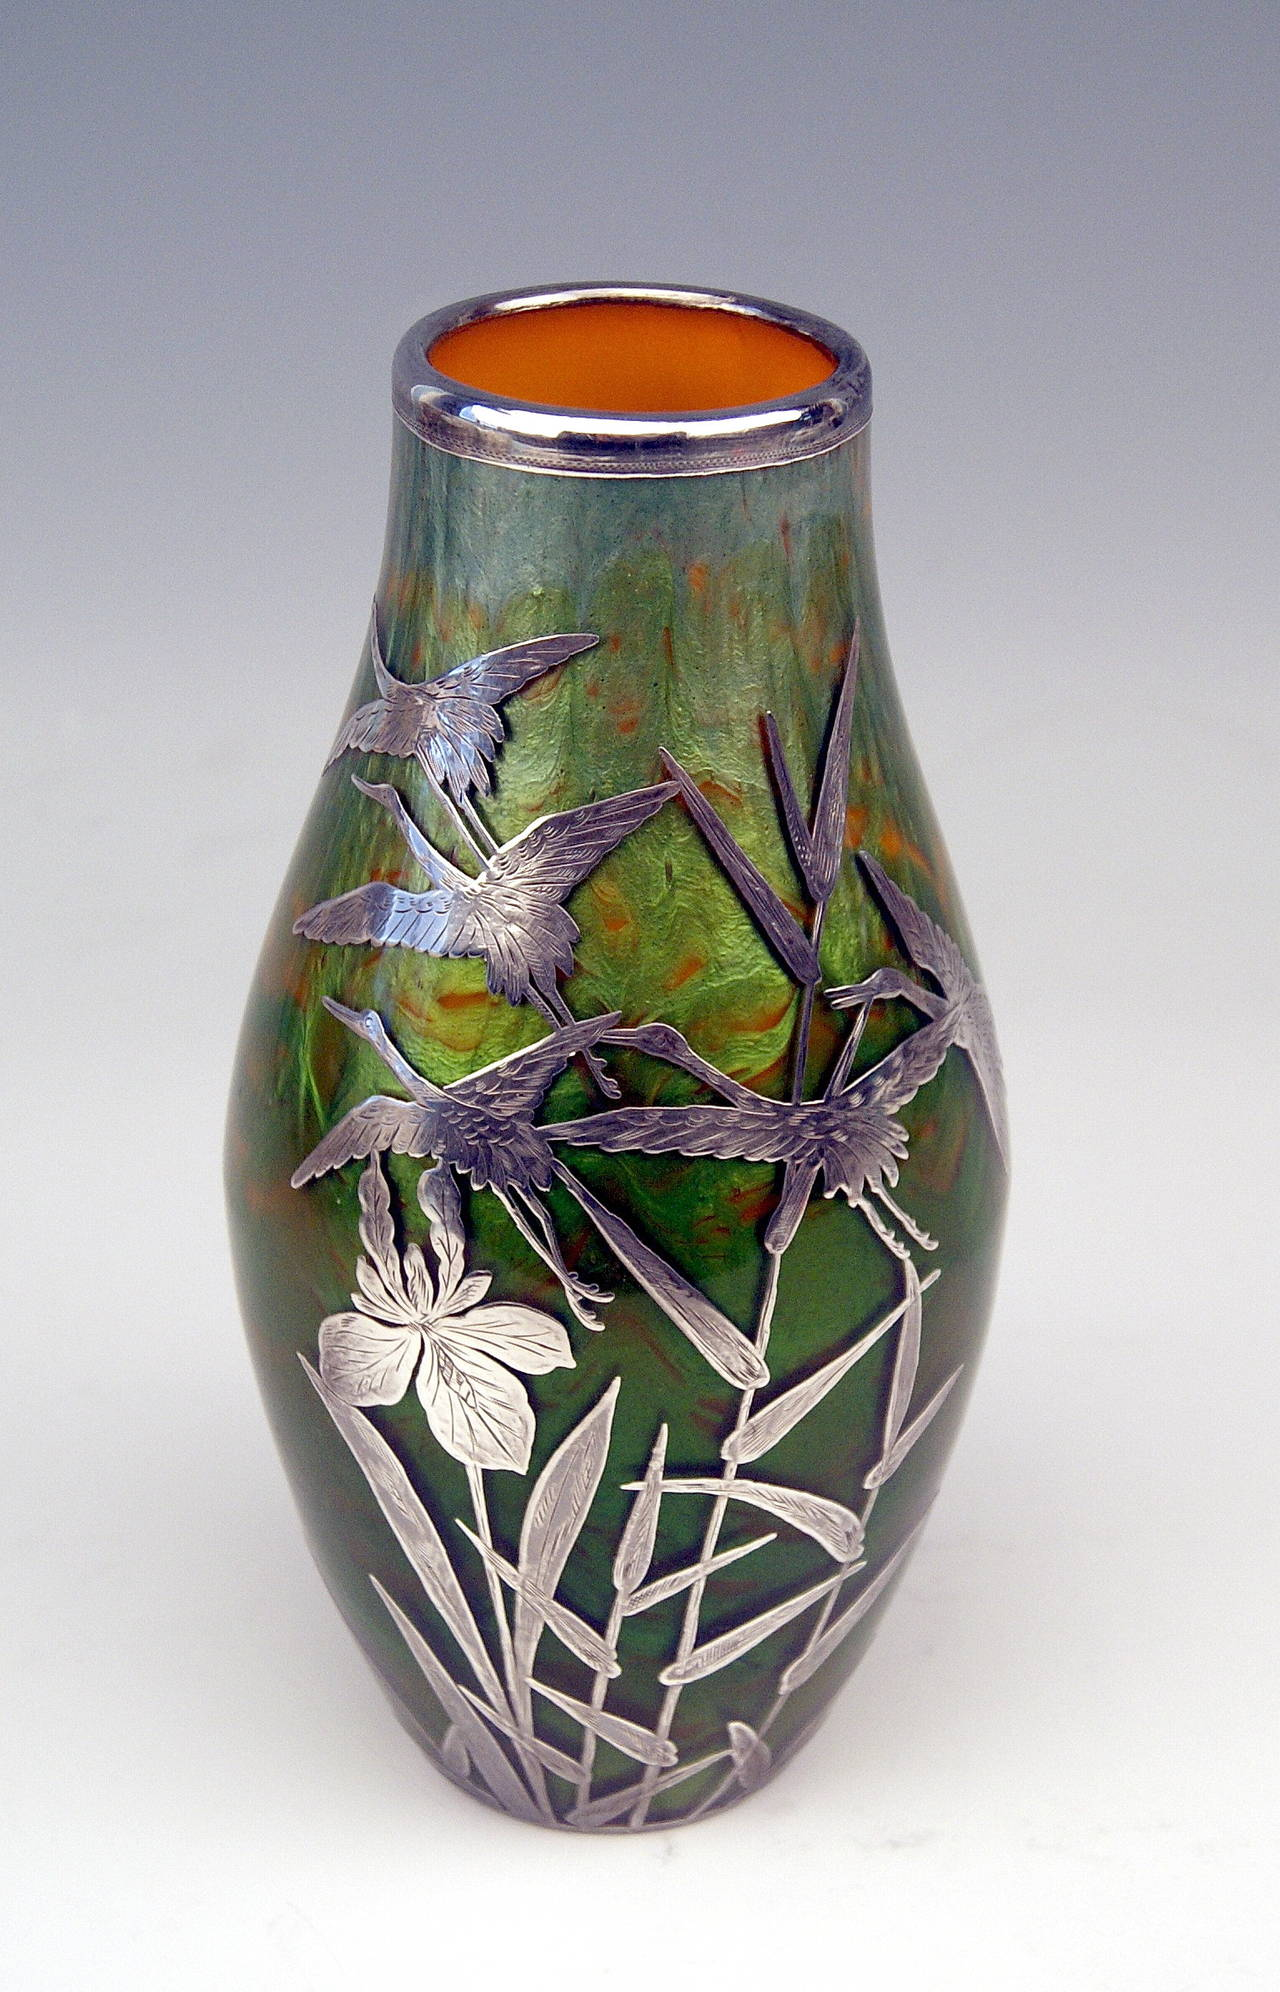 Vase Loetz Widow Klostermuehle Bohemia Art Nouveau 